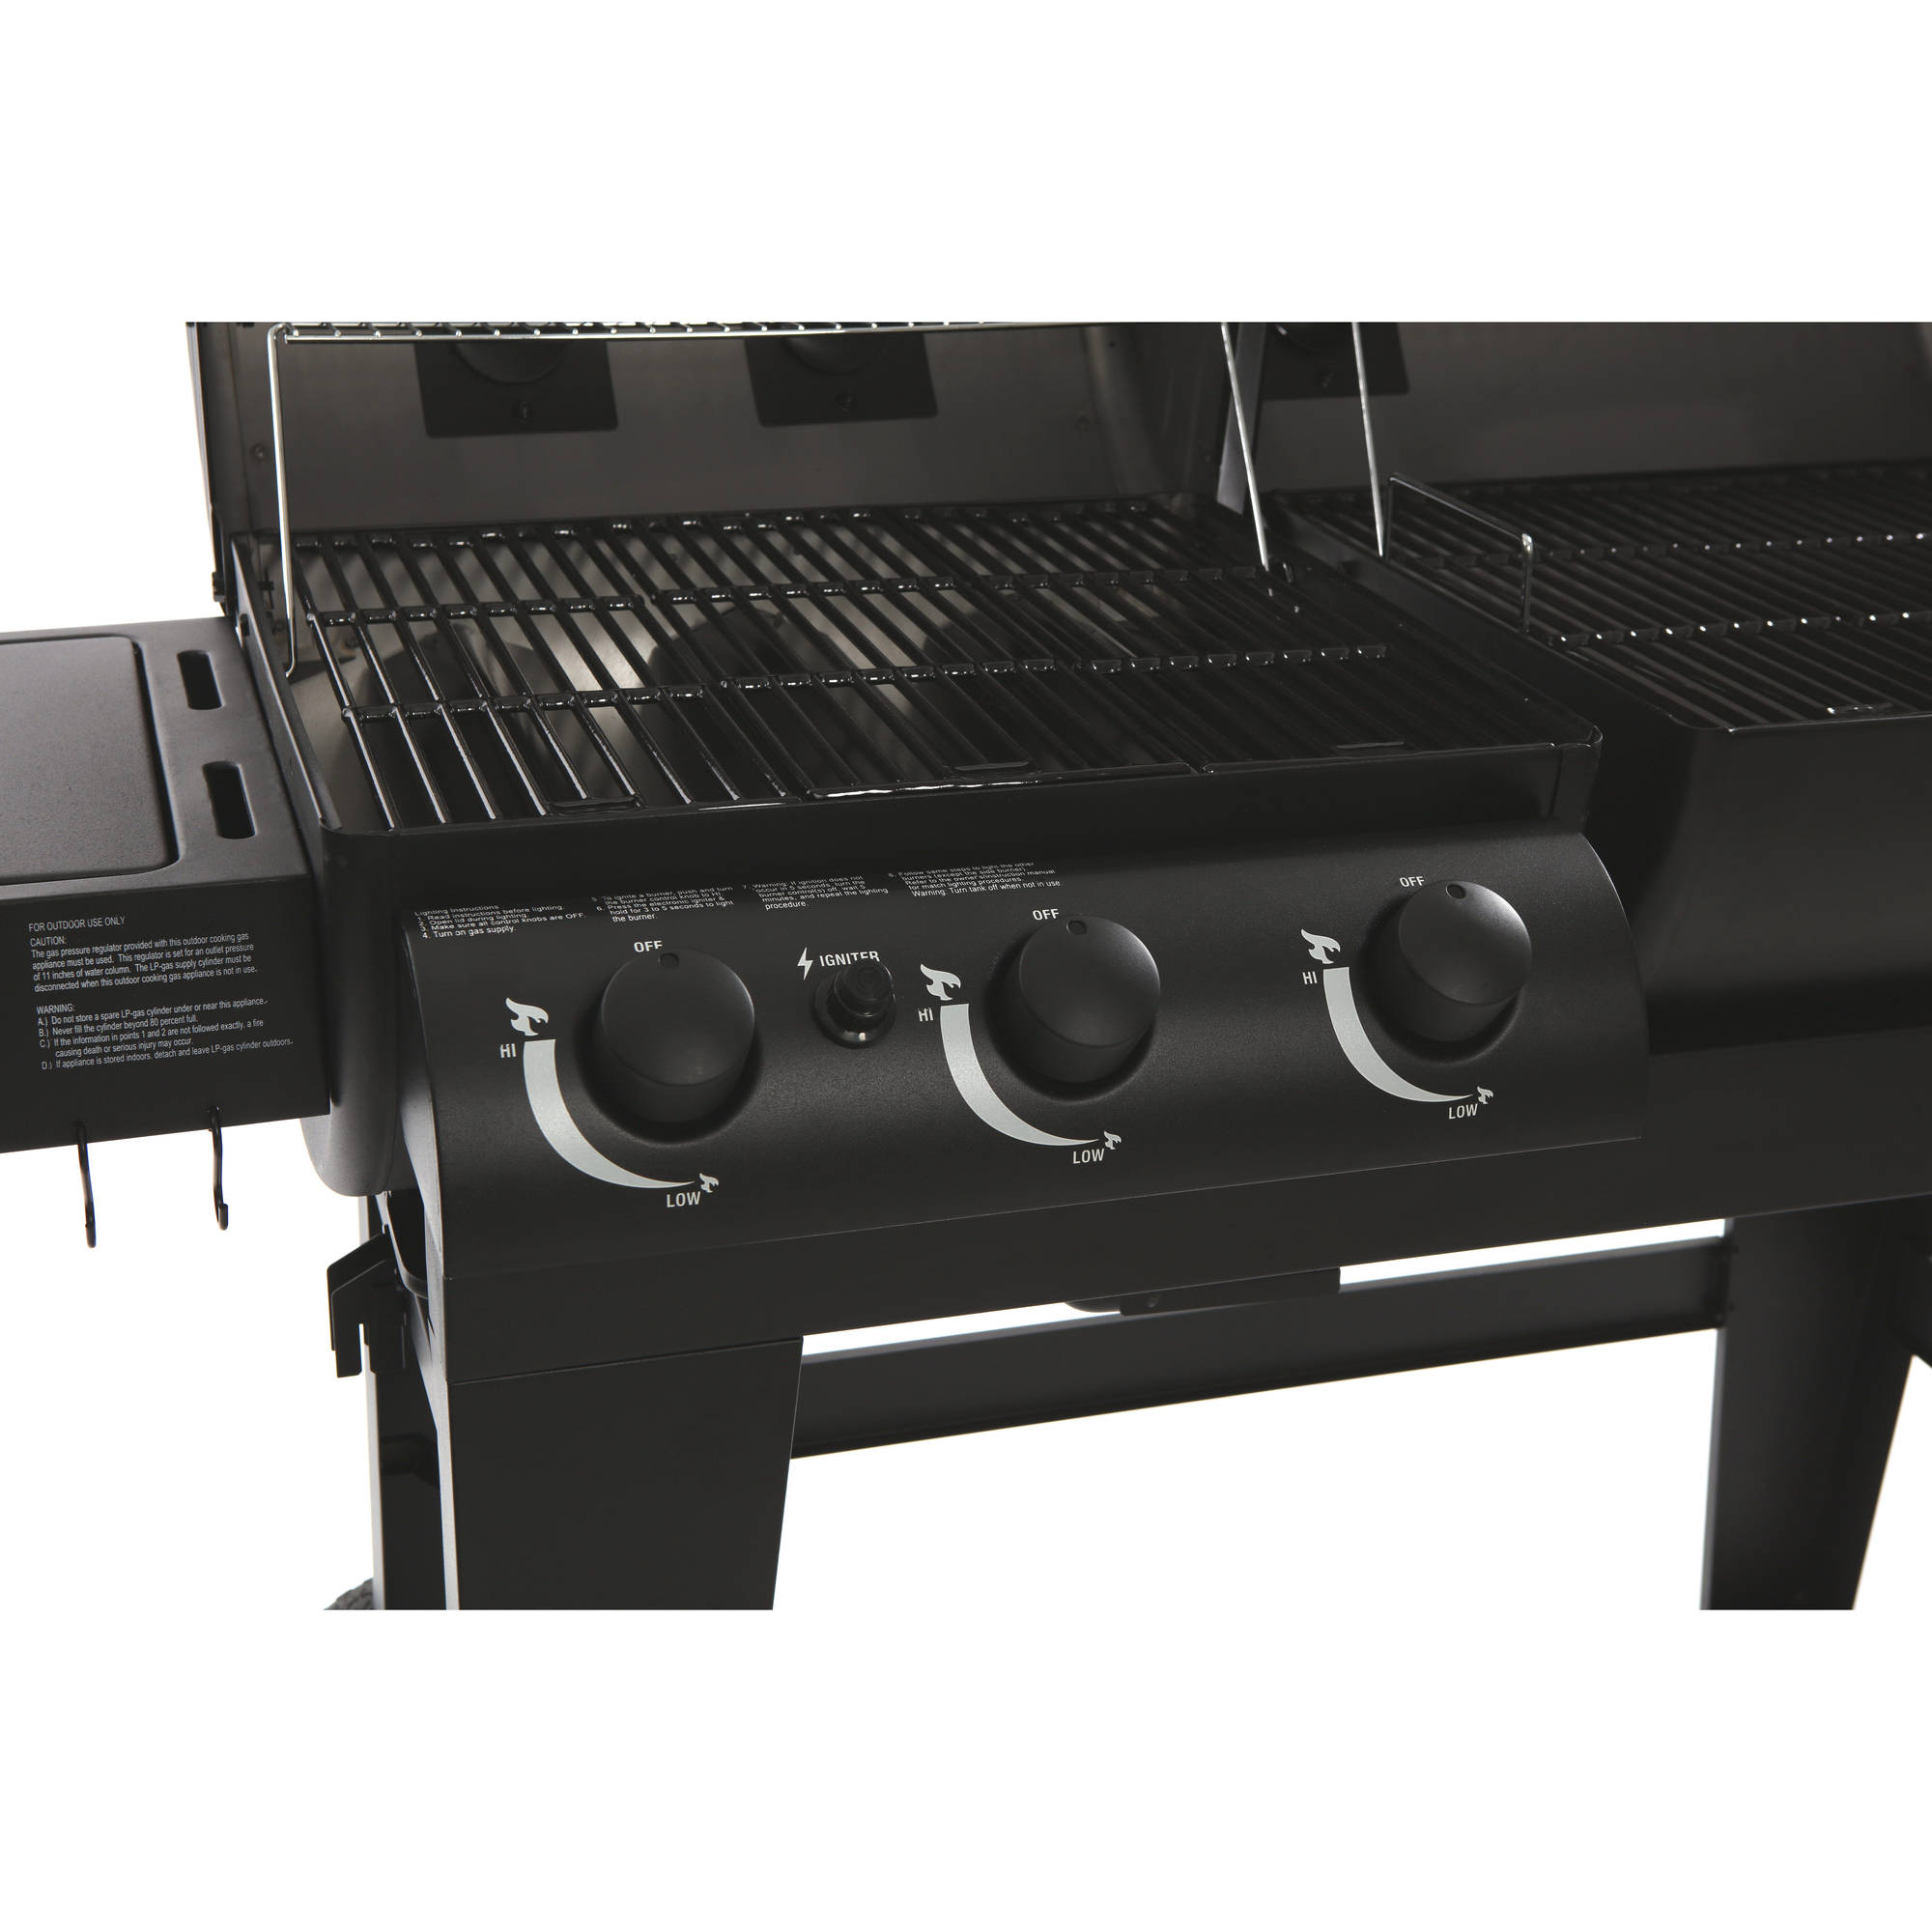 Char Griller Dual Function Gas Charcoal Grill Walmart